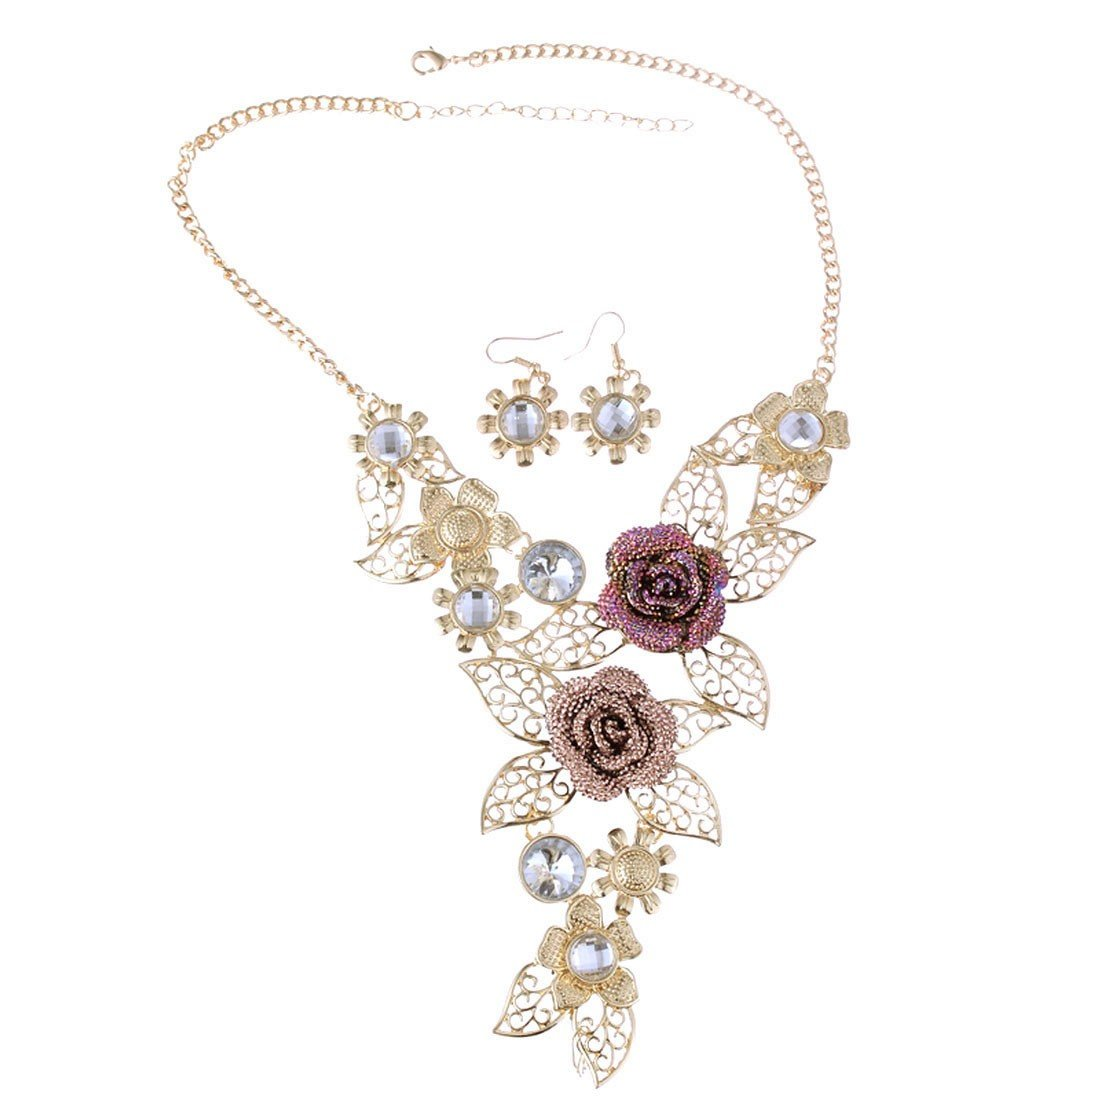 Qiyun Handmade 3D Bling Crystal Rose Flower Leaf Statement Collar Necklace Earring Set Cristal 3D Fleur Rose Feuilles Collier W005N0508